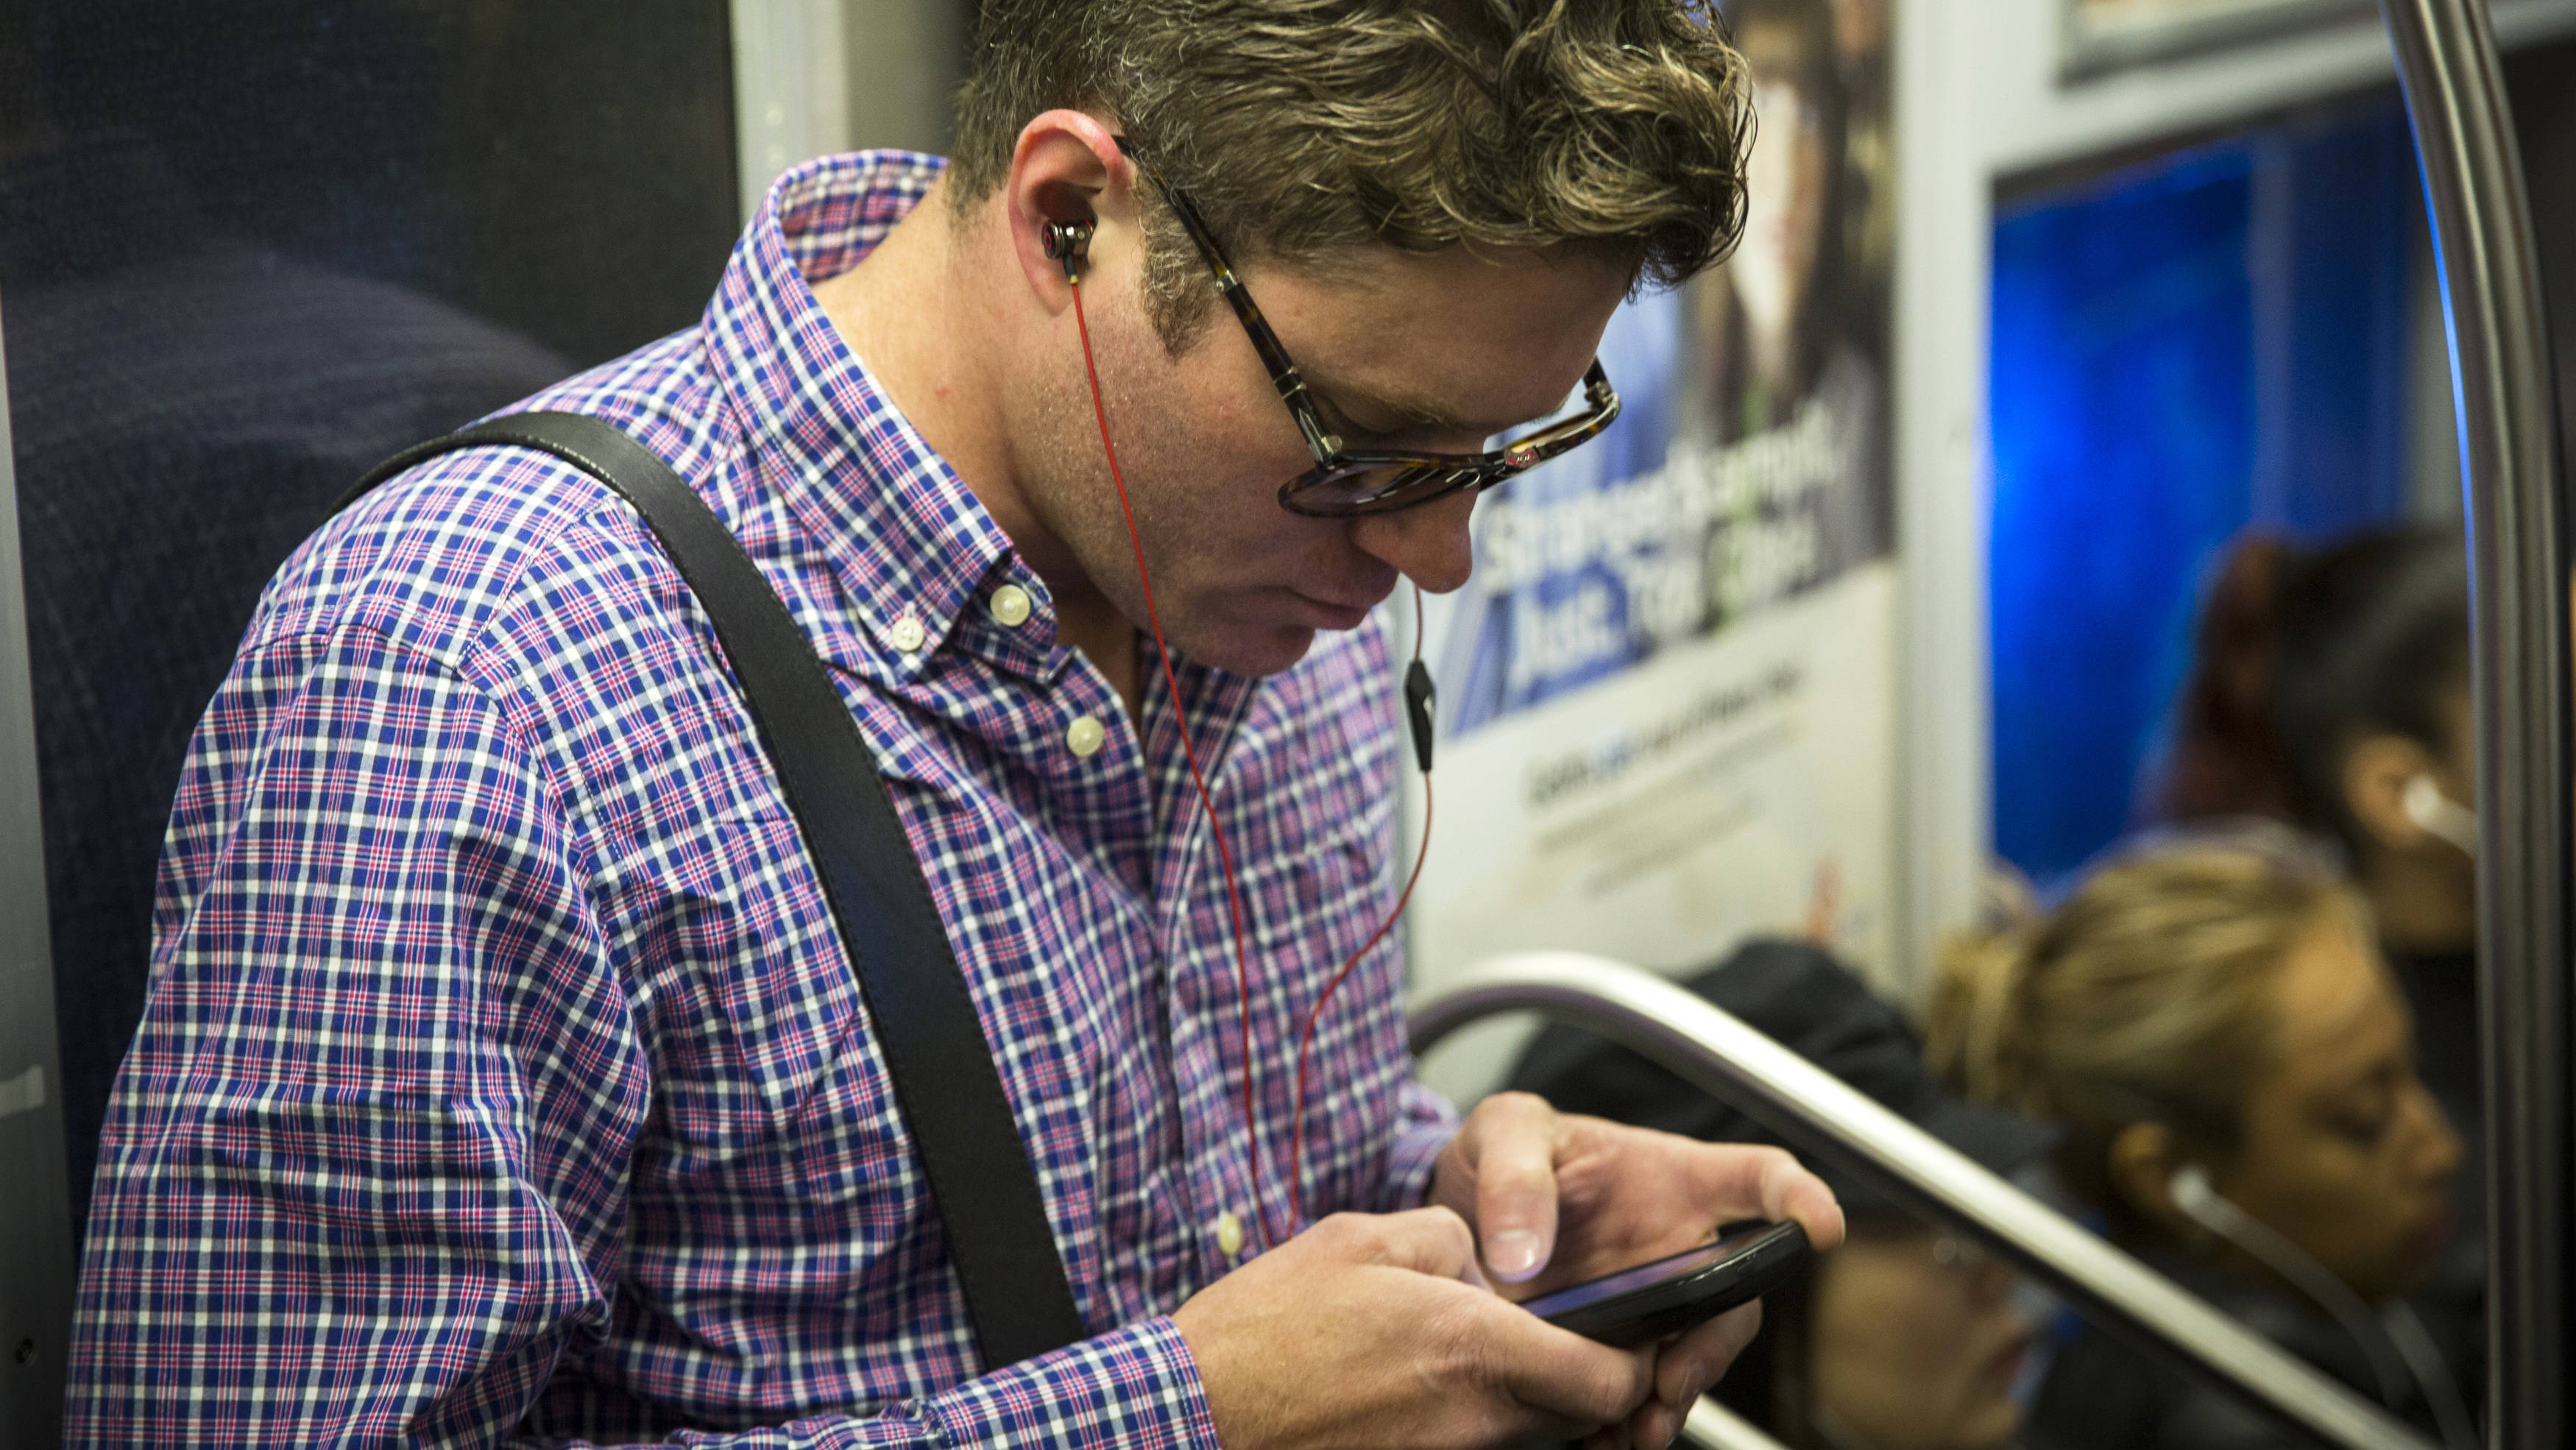 guy reading on smartphone in subway